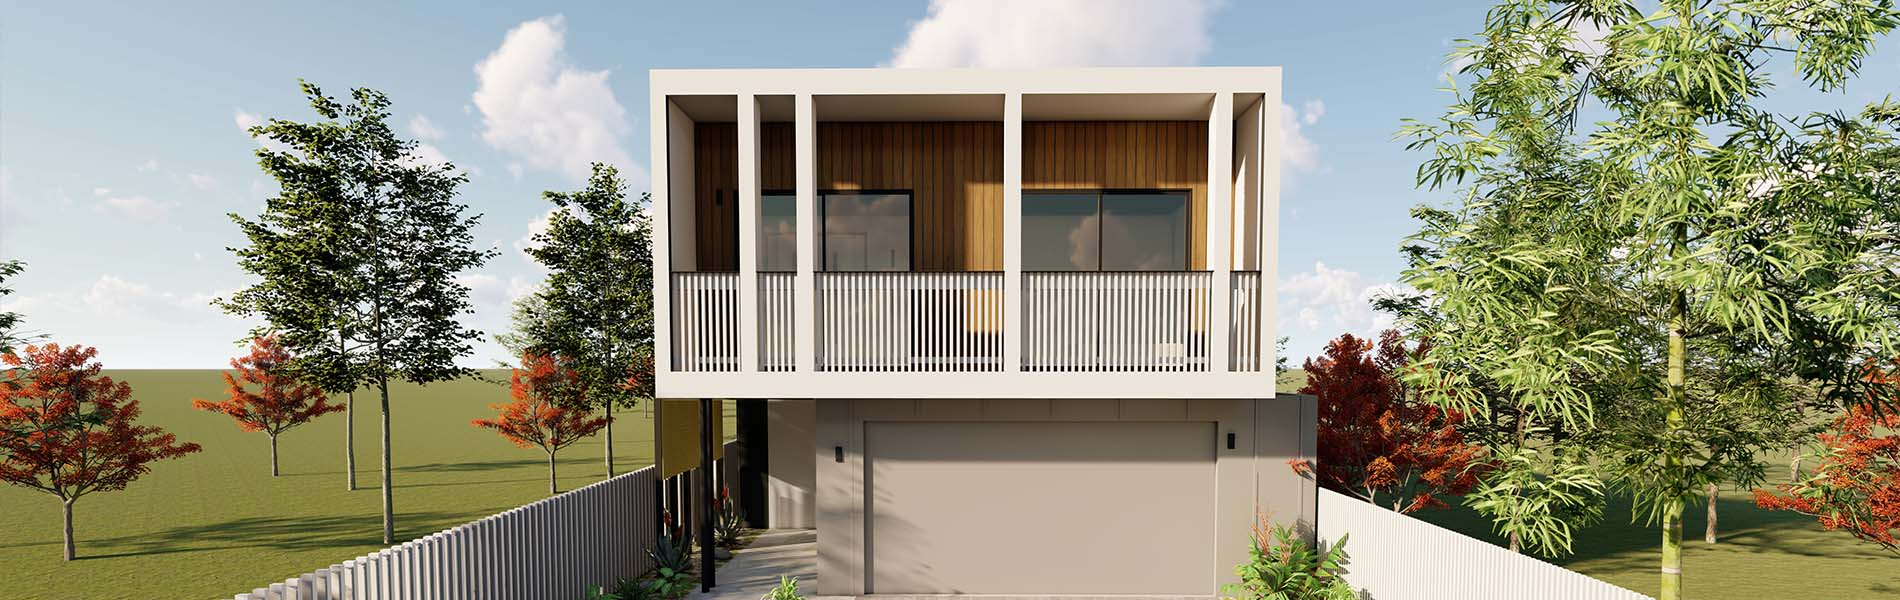 Kalka - Narrow Lot Home Design